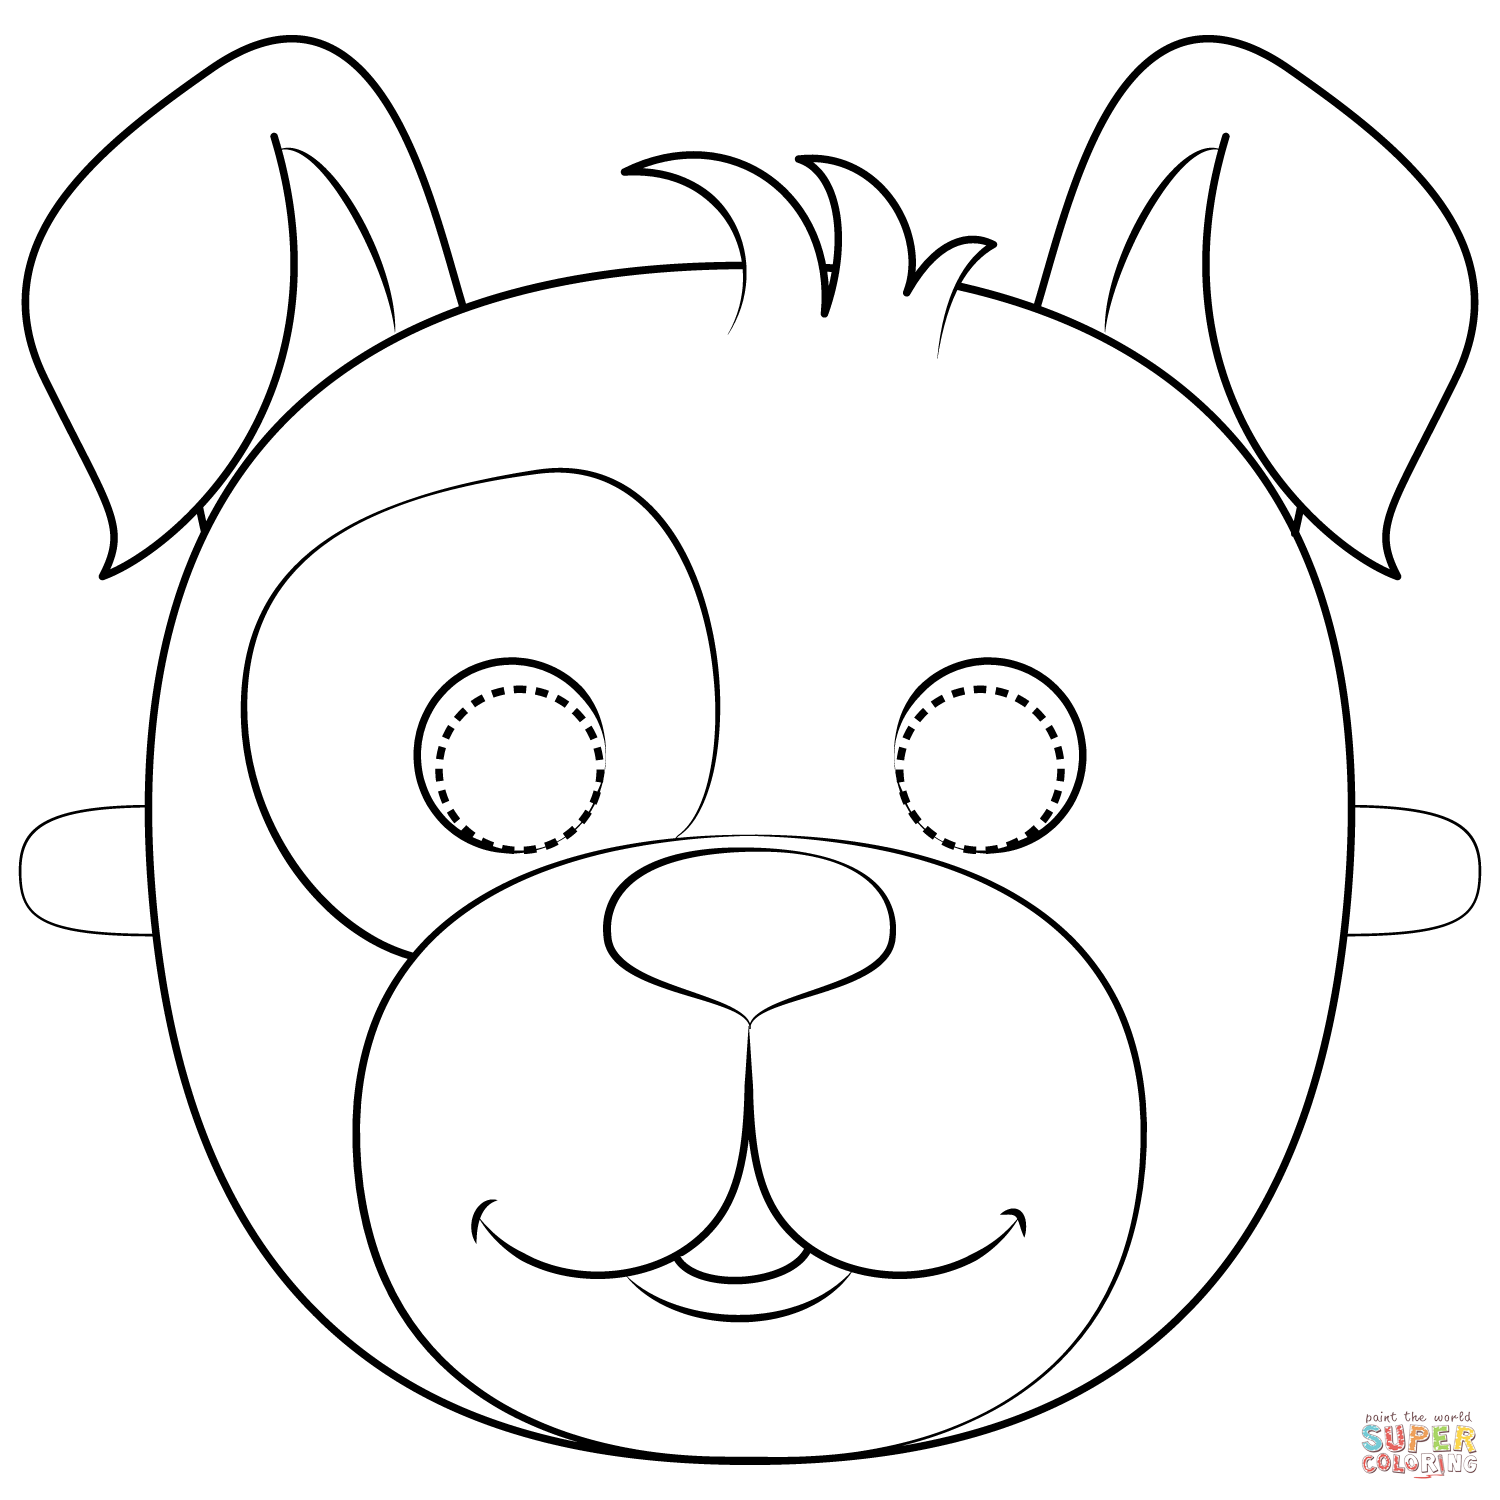 puppy mask coloring page dog or puppy masks free printable templates coloring coloring puppy page mask